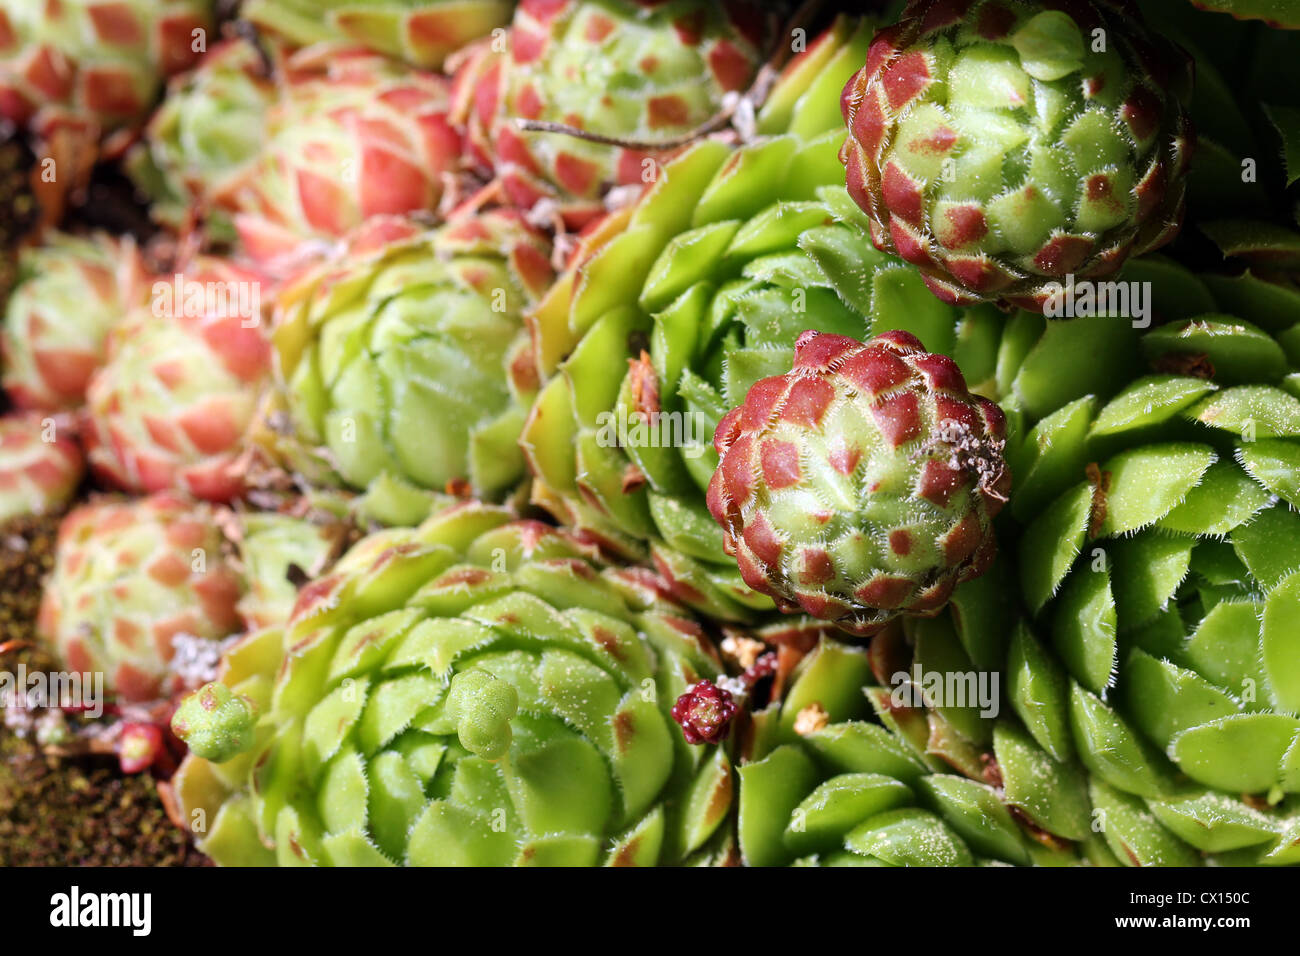 Succulent plant of the genus Sempervivum, also known as Hens and Chicks. - Stock Image